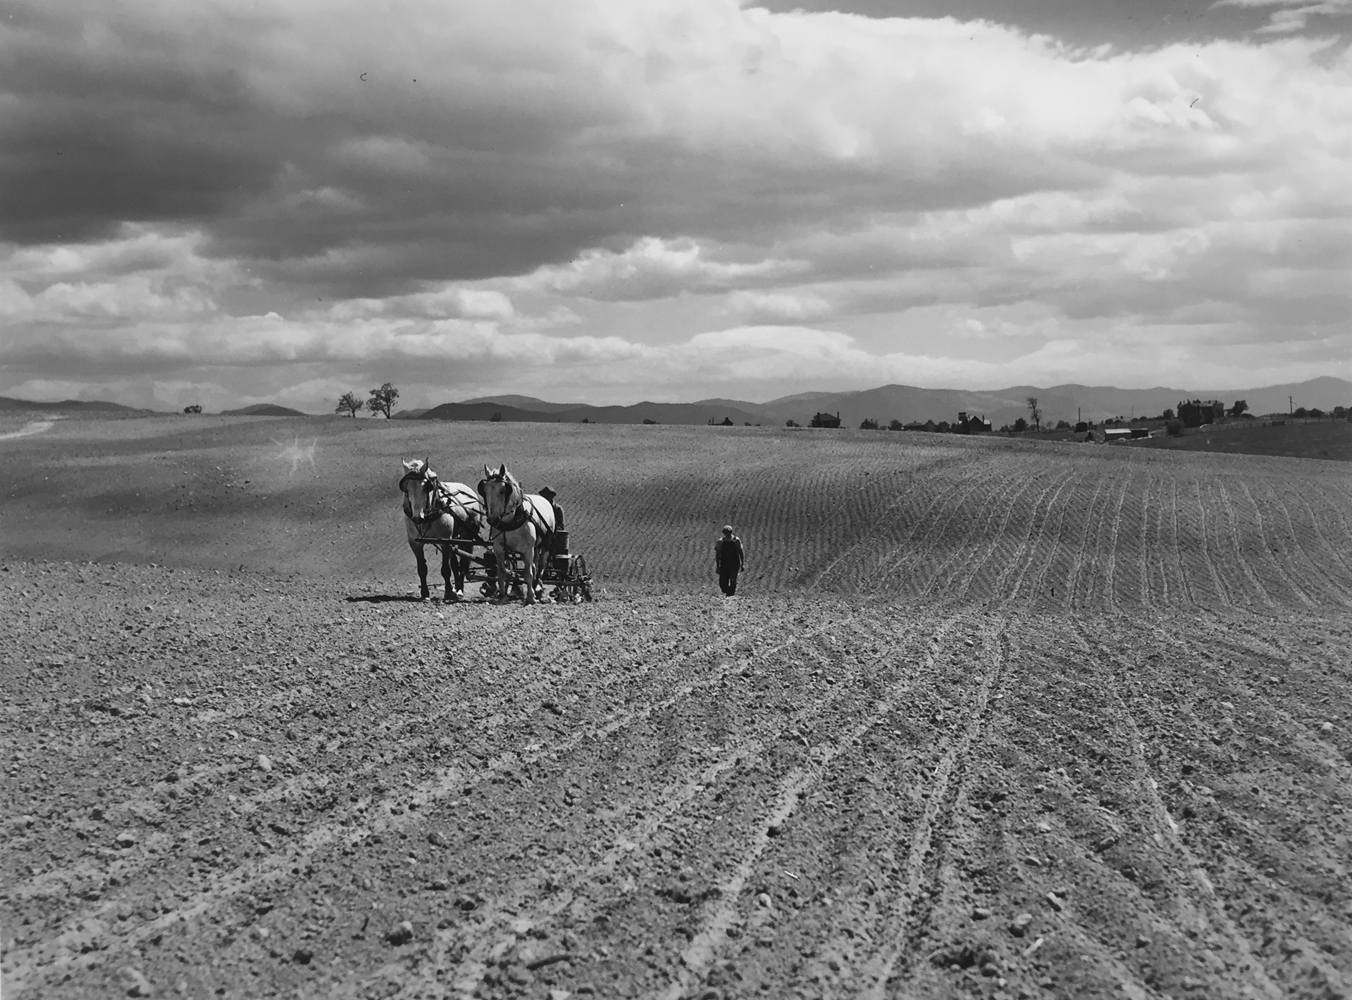 Marion Post Wolcott, Planting corn before the storm in the fertile Shenandoah Valley, Near Luray, Virginia, 1941, gelatin silver print, 11 x 14 inches, price on request